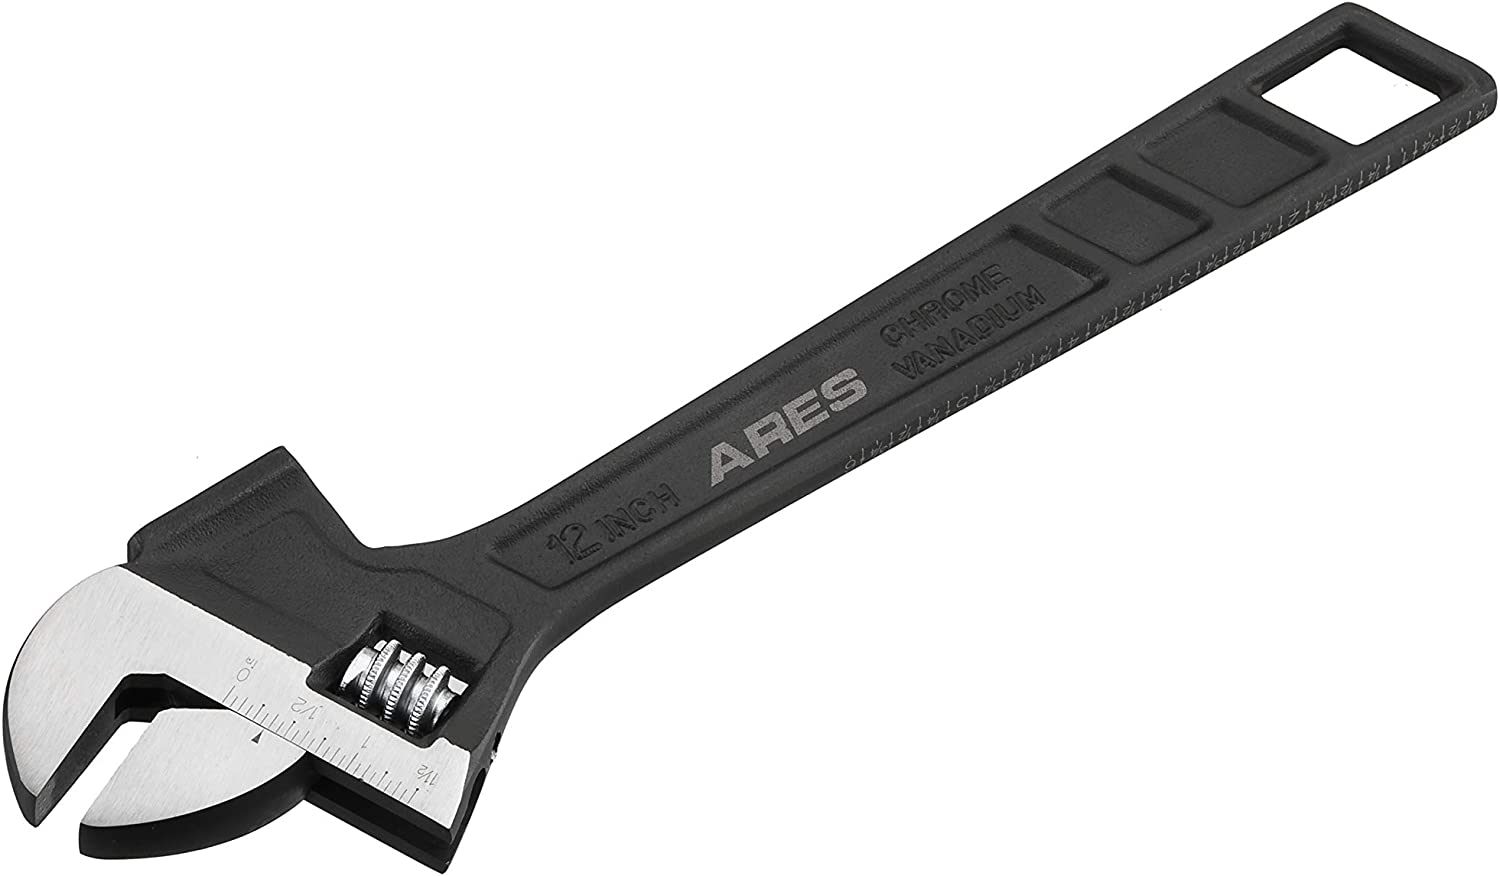 ARES 79006 - 12-Inch Hammer Head Adjustable Wrench - 1 1/2-Inch Jaw Capacity - Chrome Vanadium Steel Construction - Flat Top Hammer Face